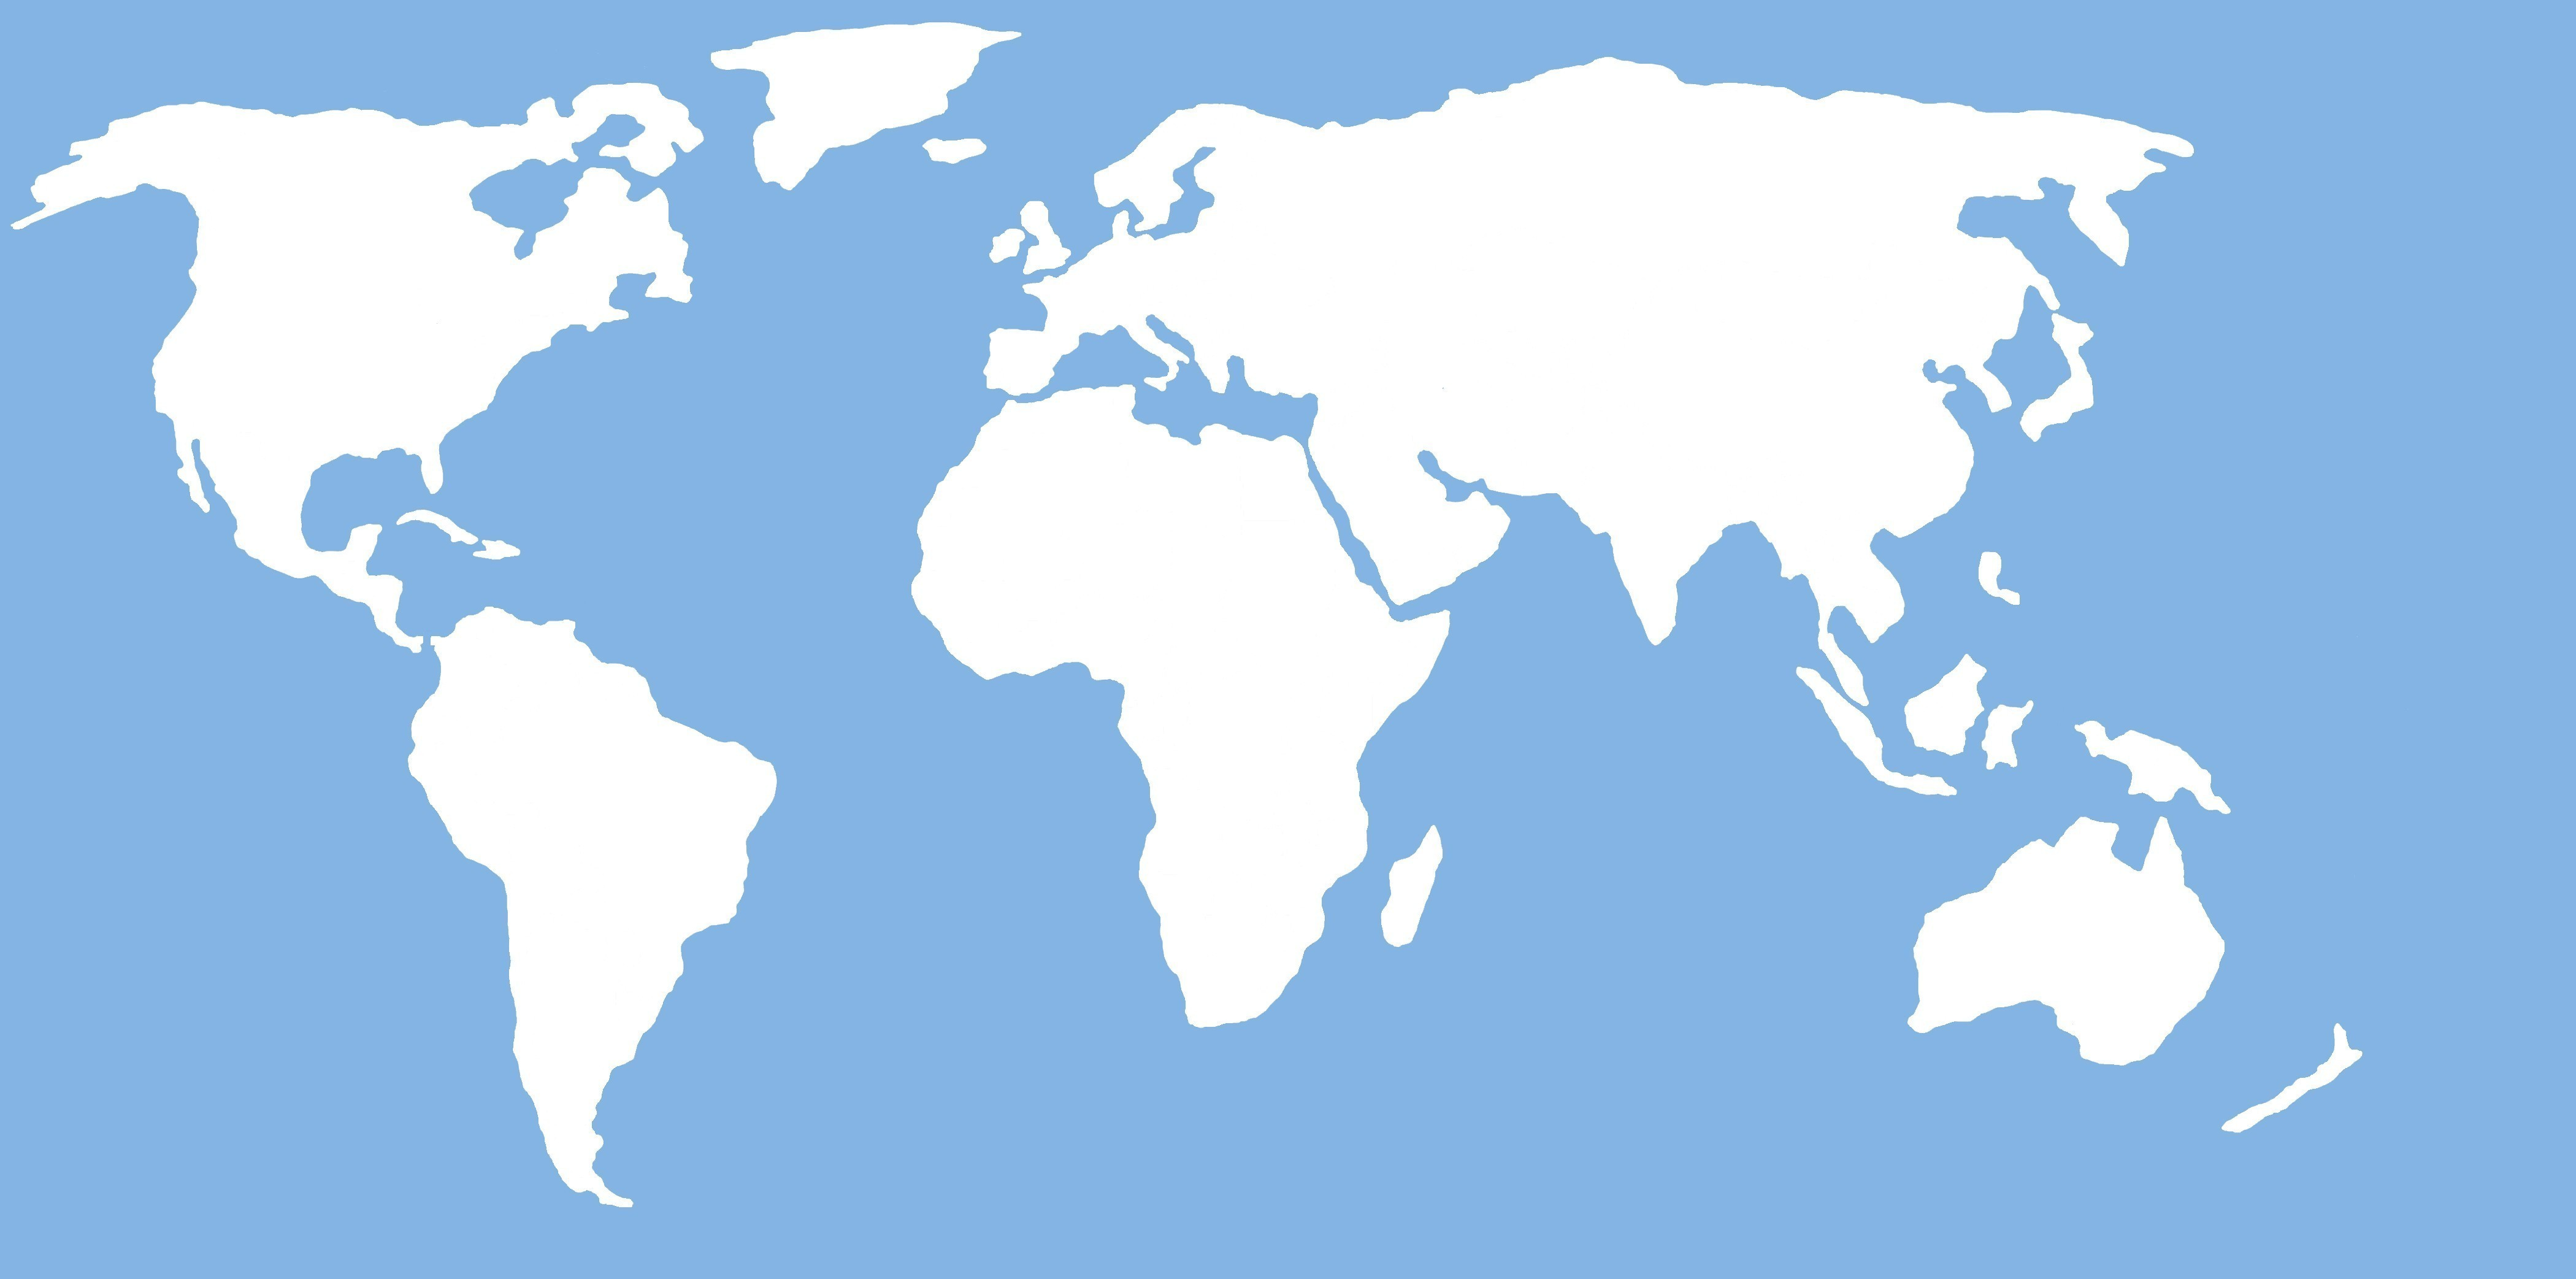 World Map Clipart Vector.